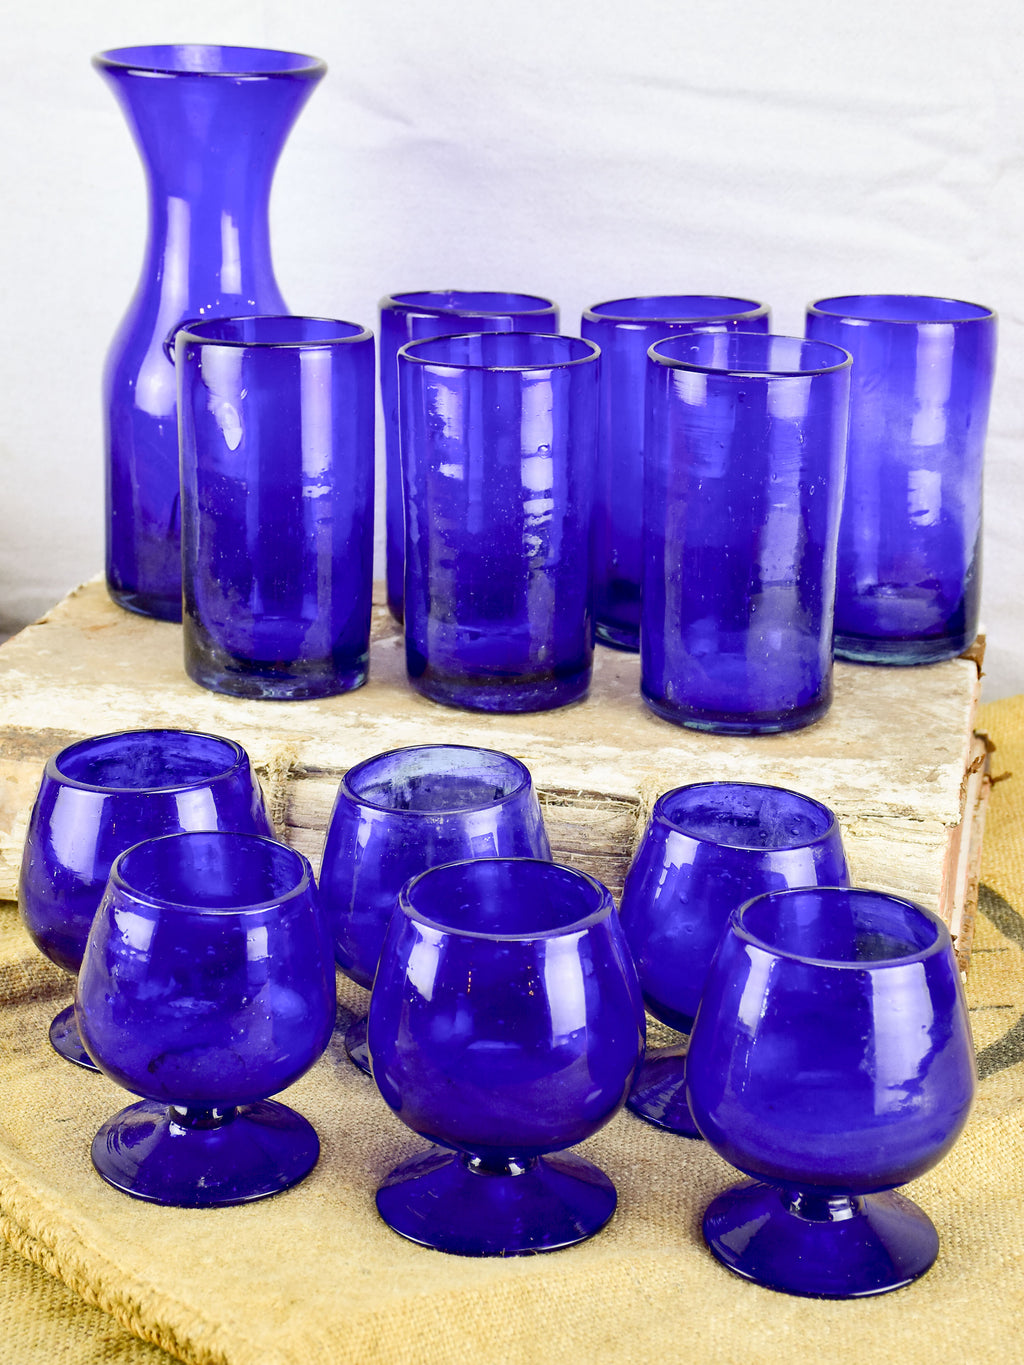 Collection of cobalt blue glassware from Biot, France